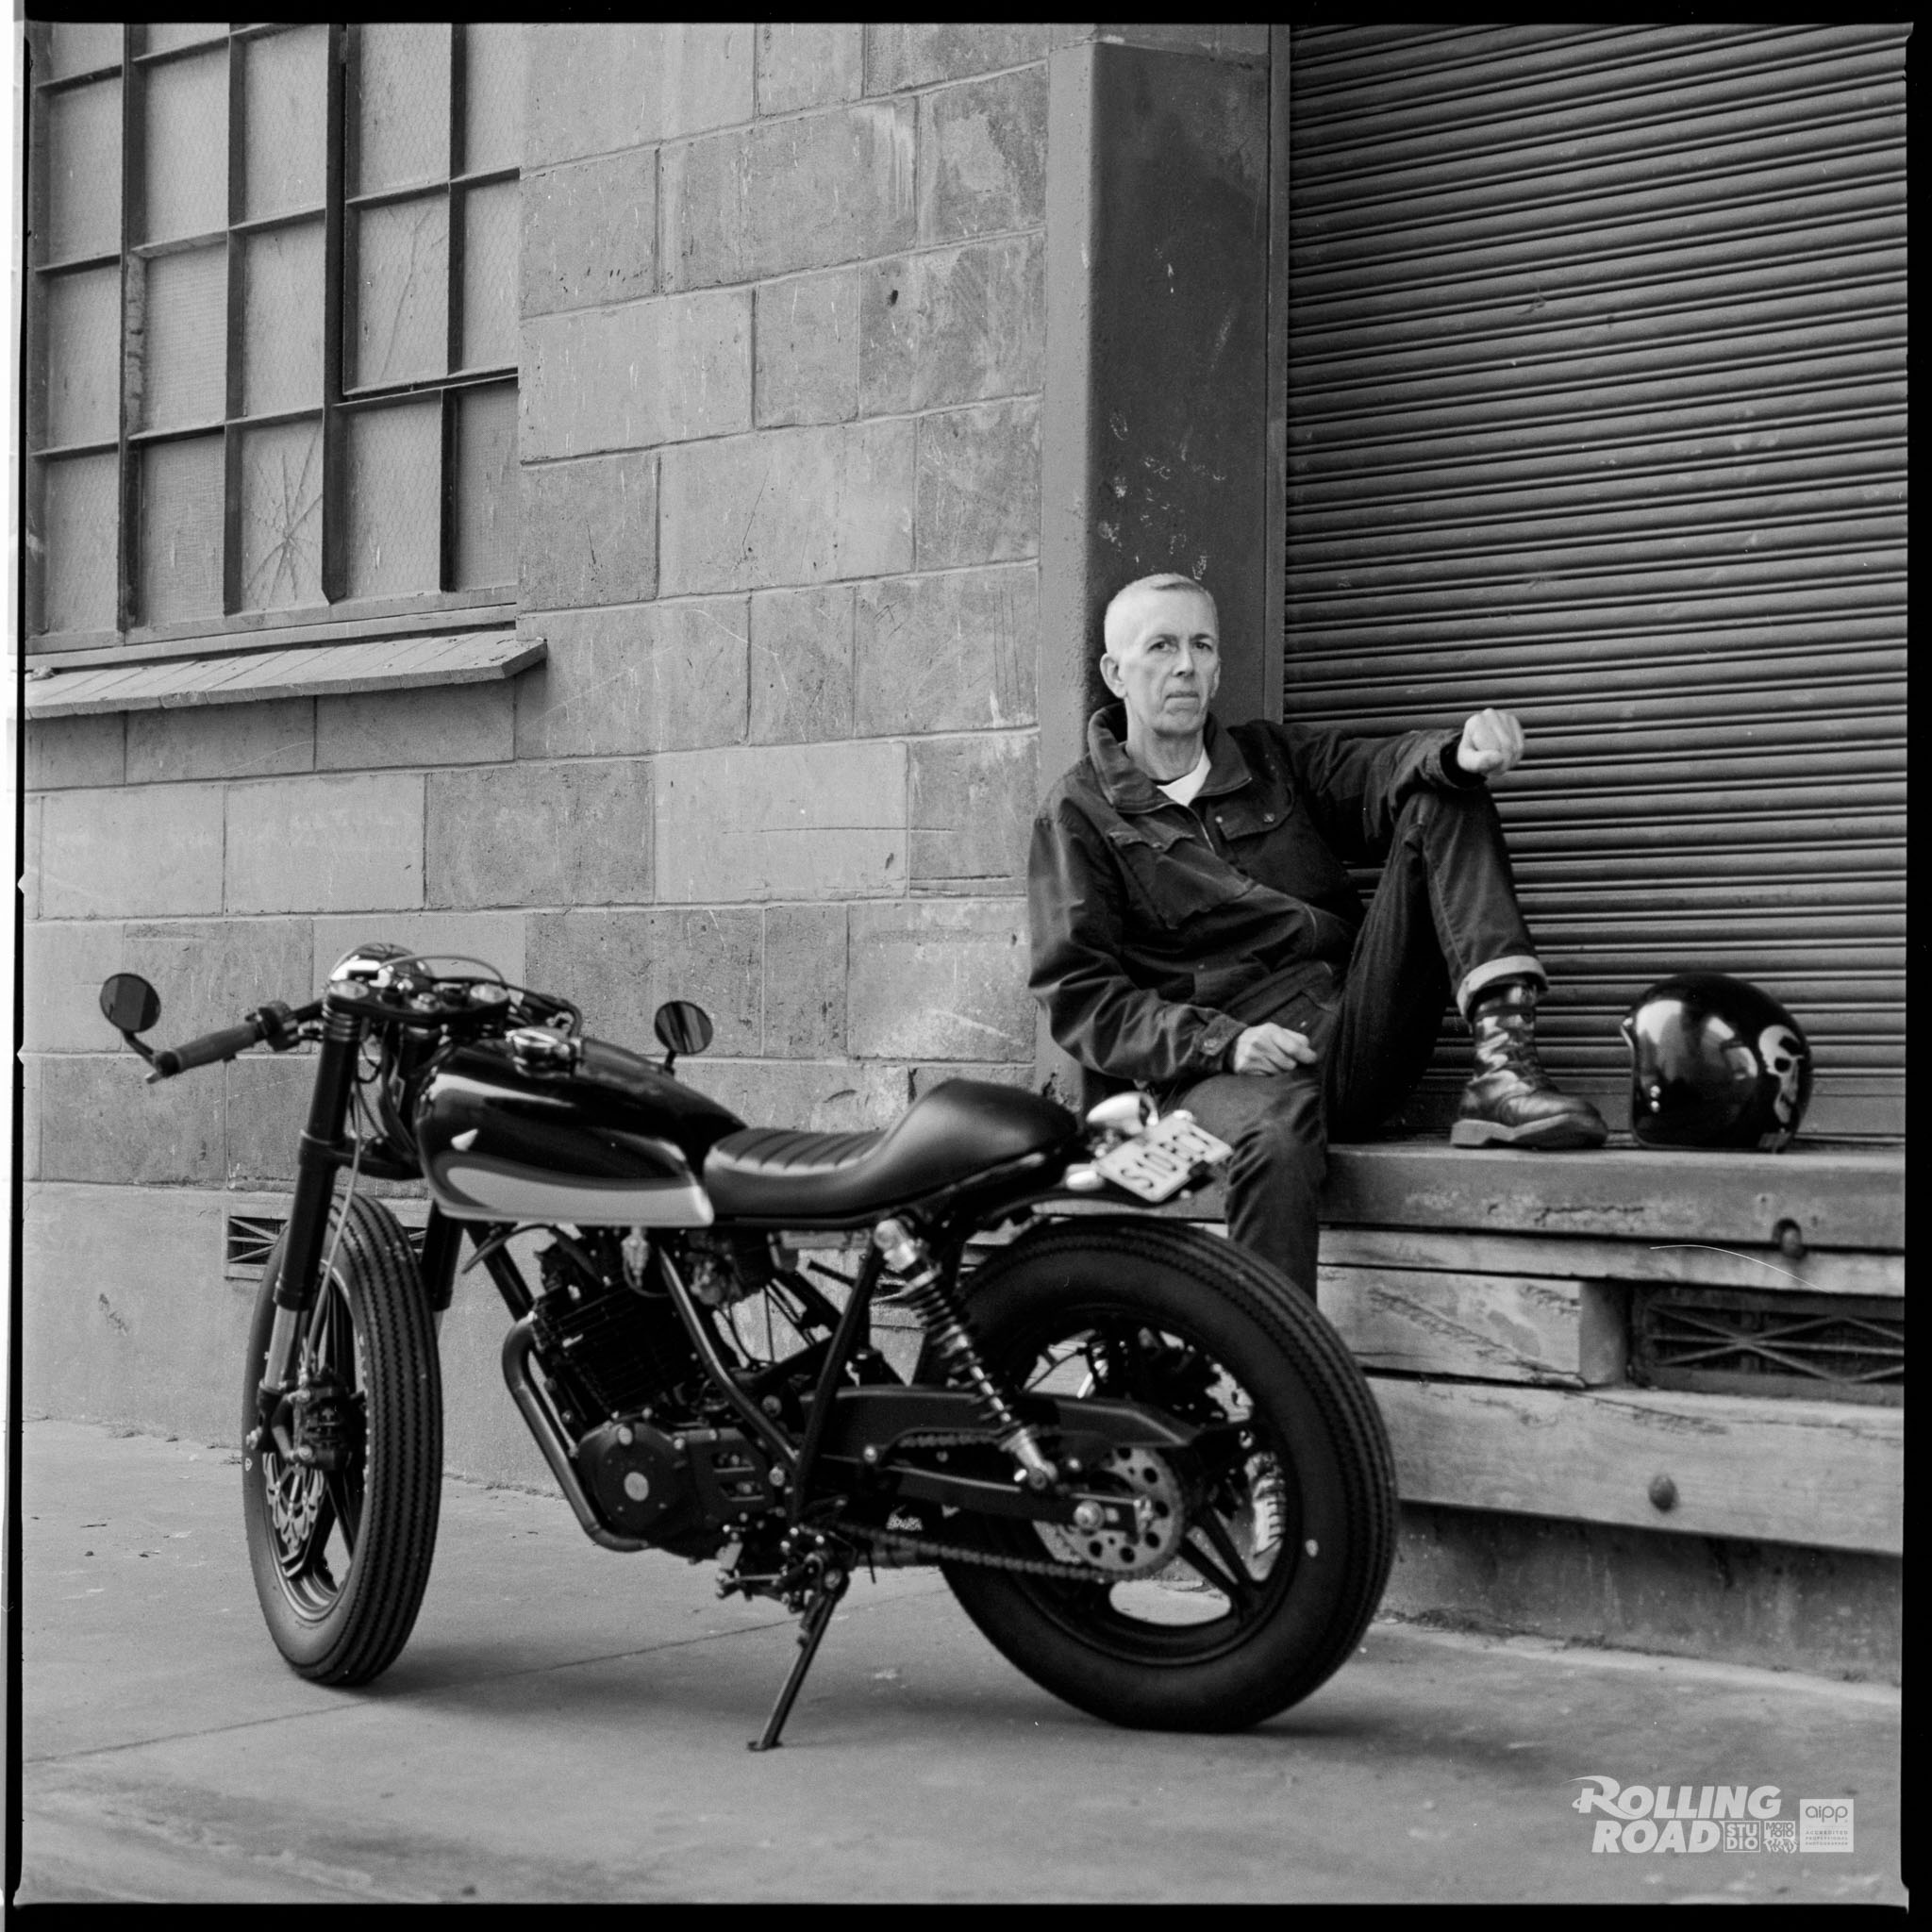 rolling-road-studio-daniel-purvis-photography-motorcycle-003.jpg